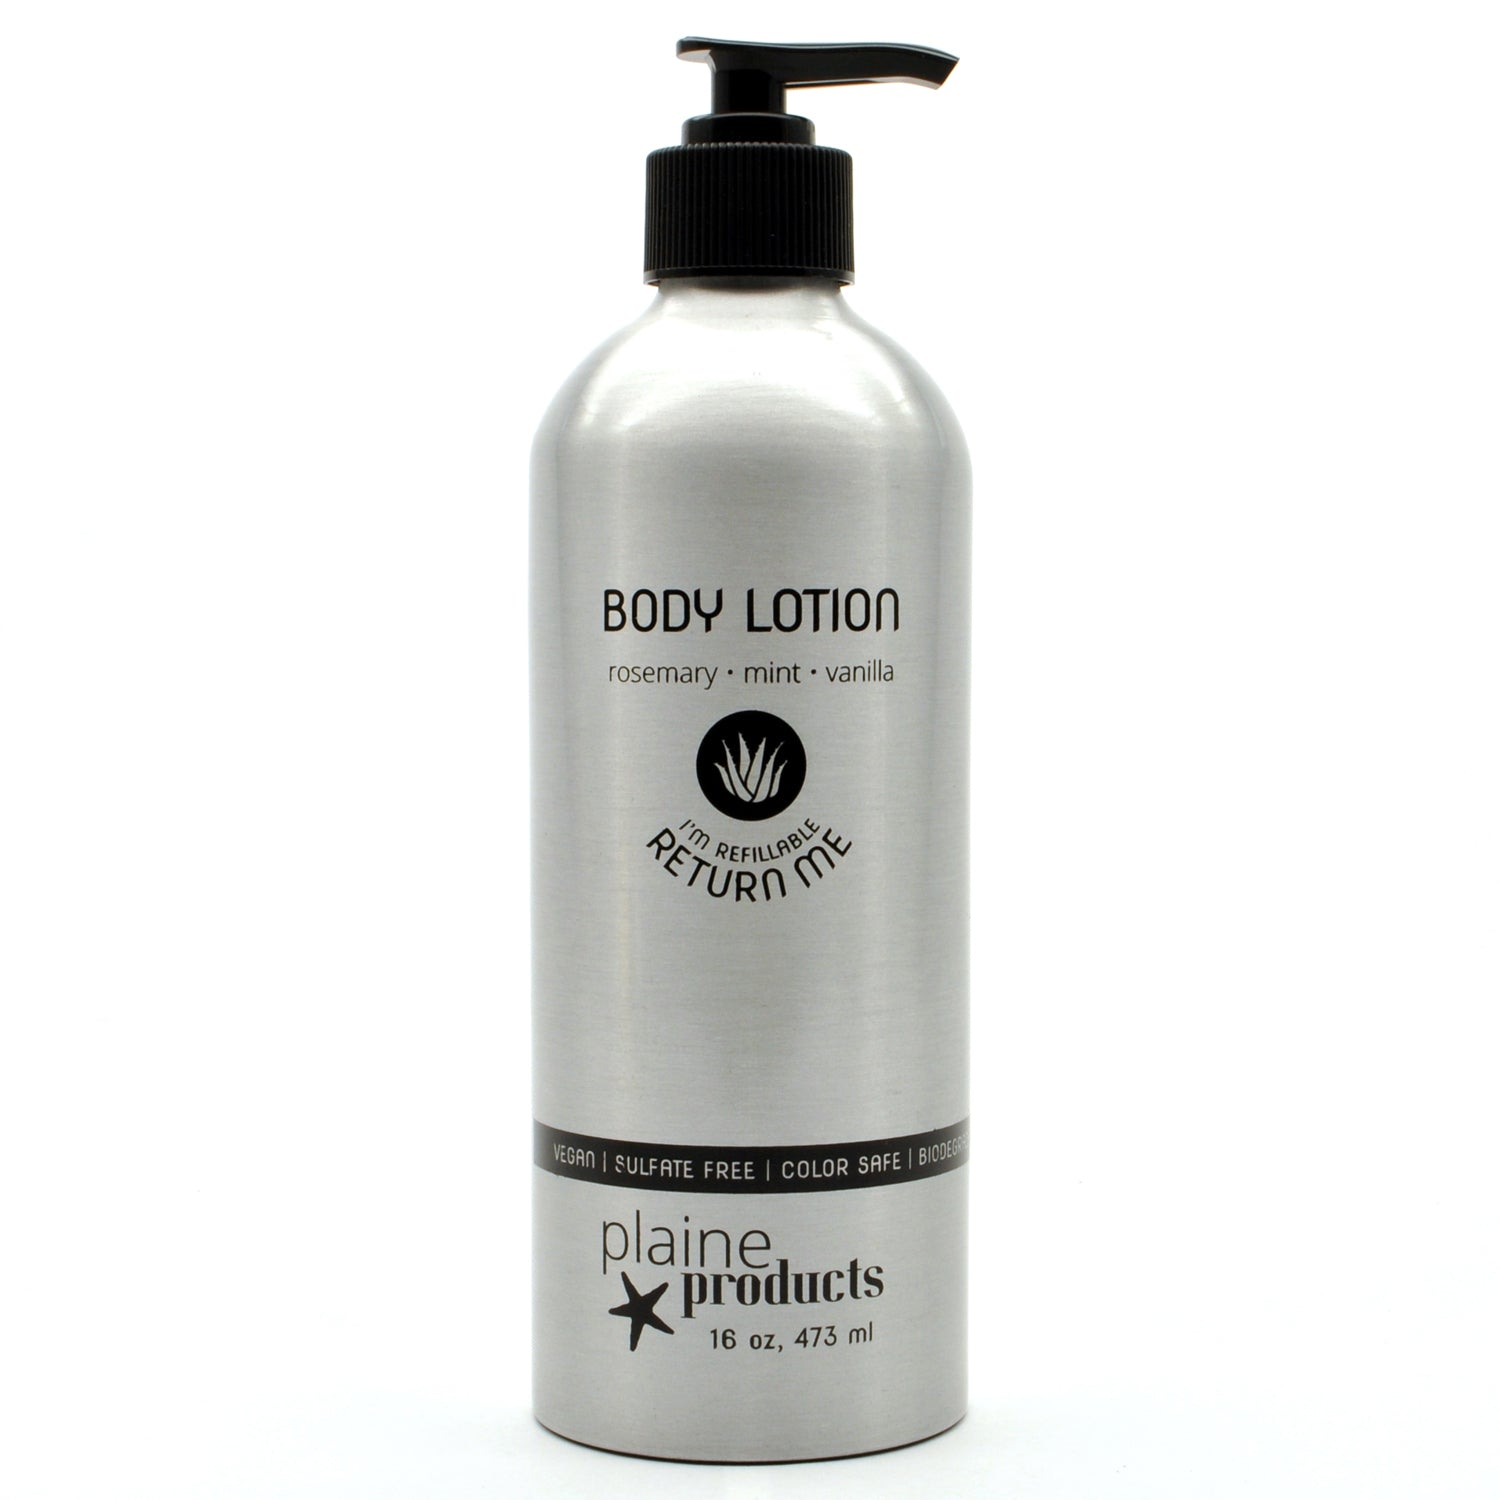 Body Lotion - Rosemary Mint Vanilla